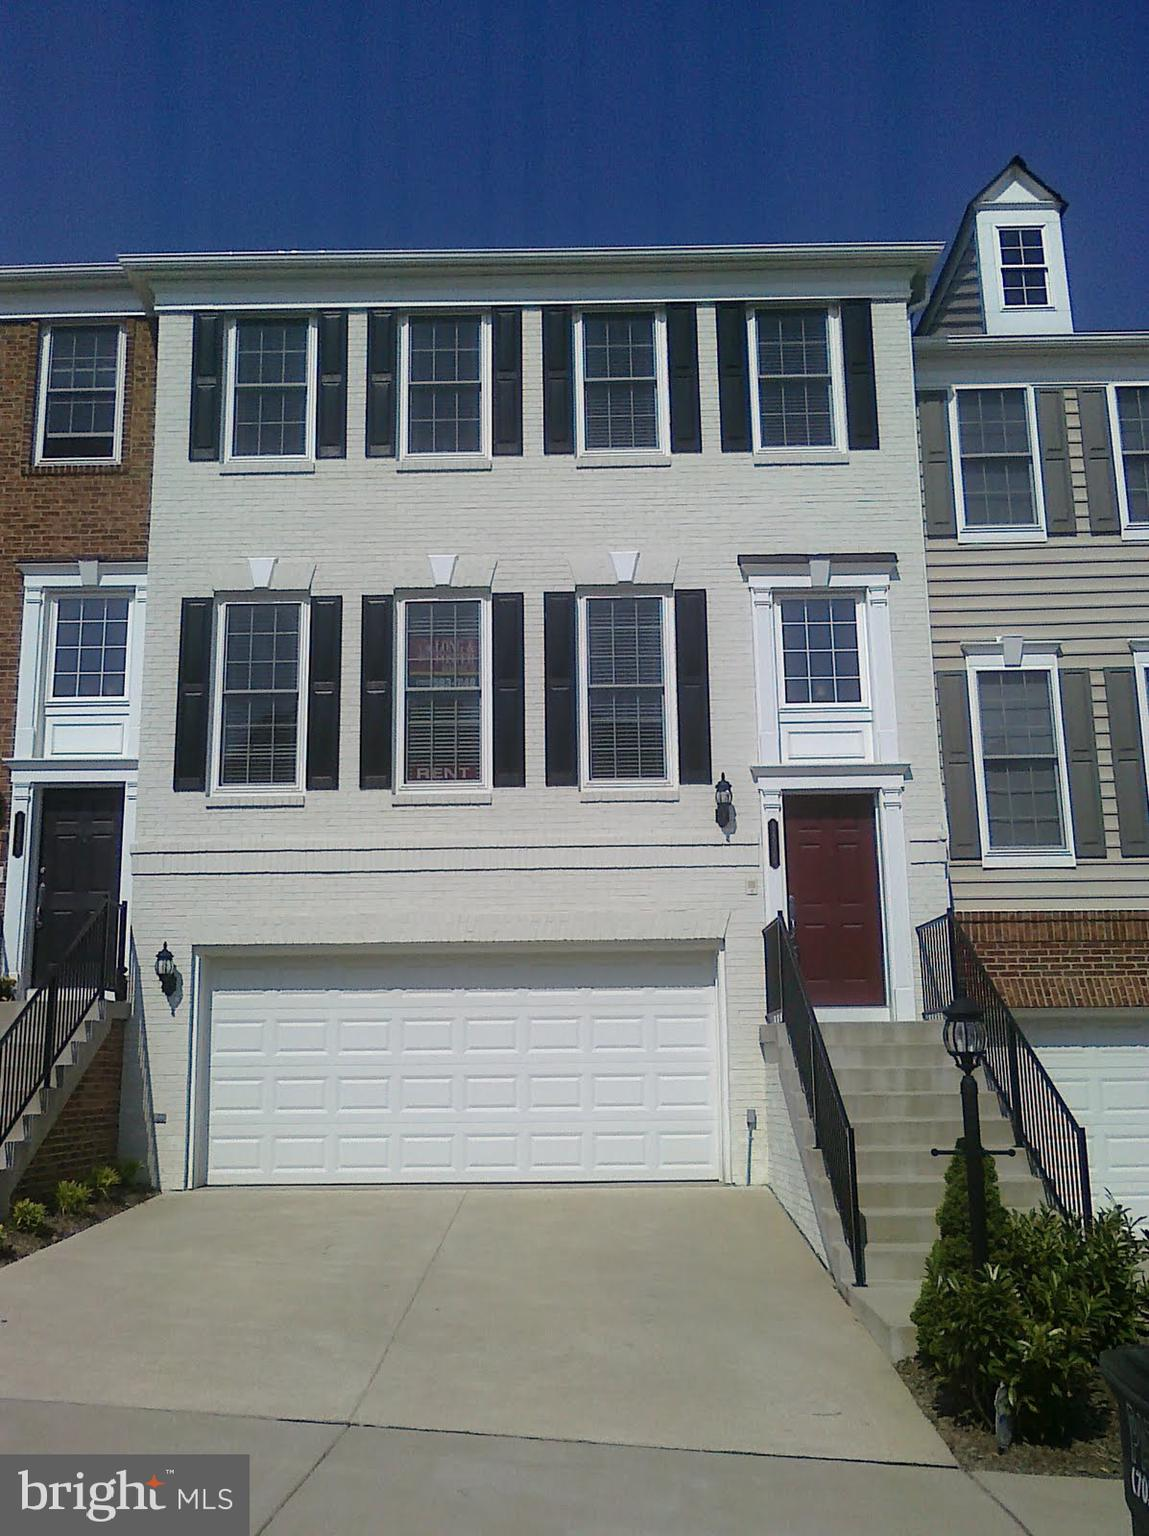 Amazing 4 bed, 3.5 bath, 3 level town home in highly sought after Potomac Club community. Over 2100 sq ft. Hardwood floors on main level, gas fireplace in family room. Bump outs on all 3 levels. Backs to trees. Large master suite. Master bath with seperate tub and shower. Laundry on bedroom level. Walk out lower level right off 2 car garage with high ceilings. Nice size 4th bedroom and full bath. Directly across from Wegmans and Stonebridge town center. Very close to the Potomac Mills Mall, Costco, Walmart, BJs, Sentera Hospital, the VRE station, I95 and Rt. 1. Gated community, with fantastic amenities - indoor pool, outdoor pool, tot lots, fitness center, club house room, business center, and rock climbing wall.